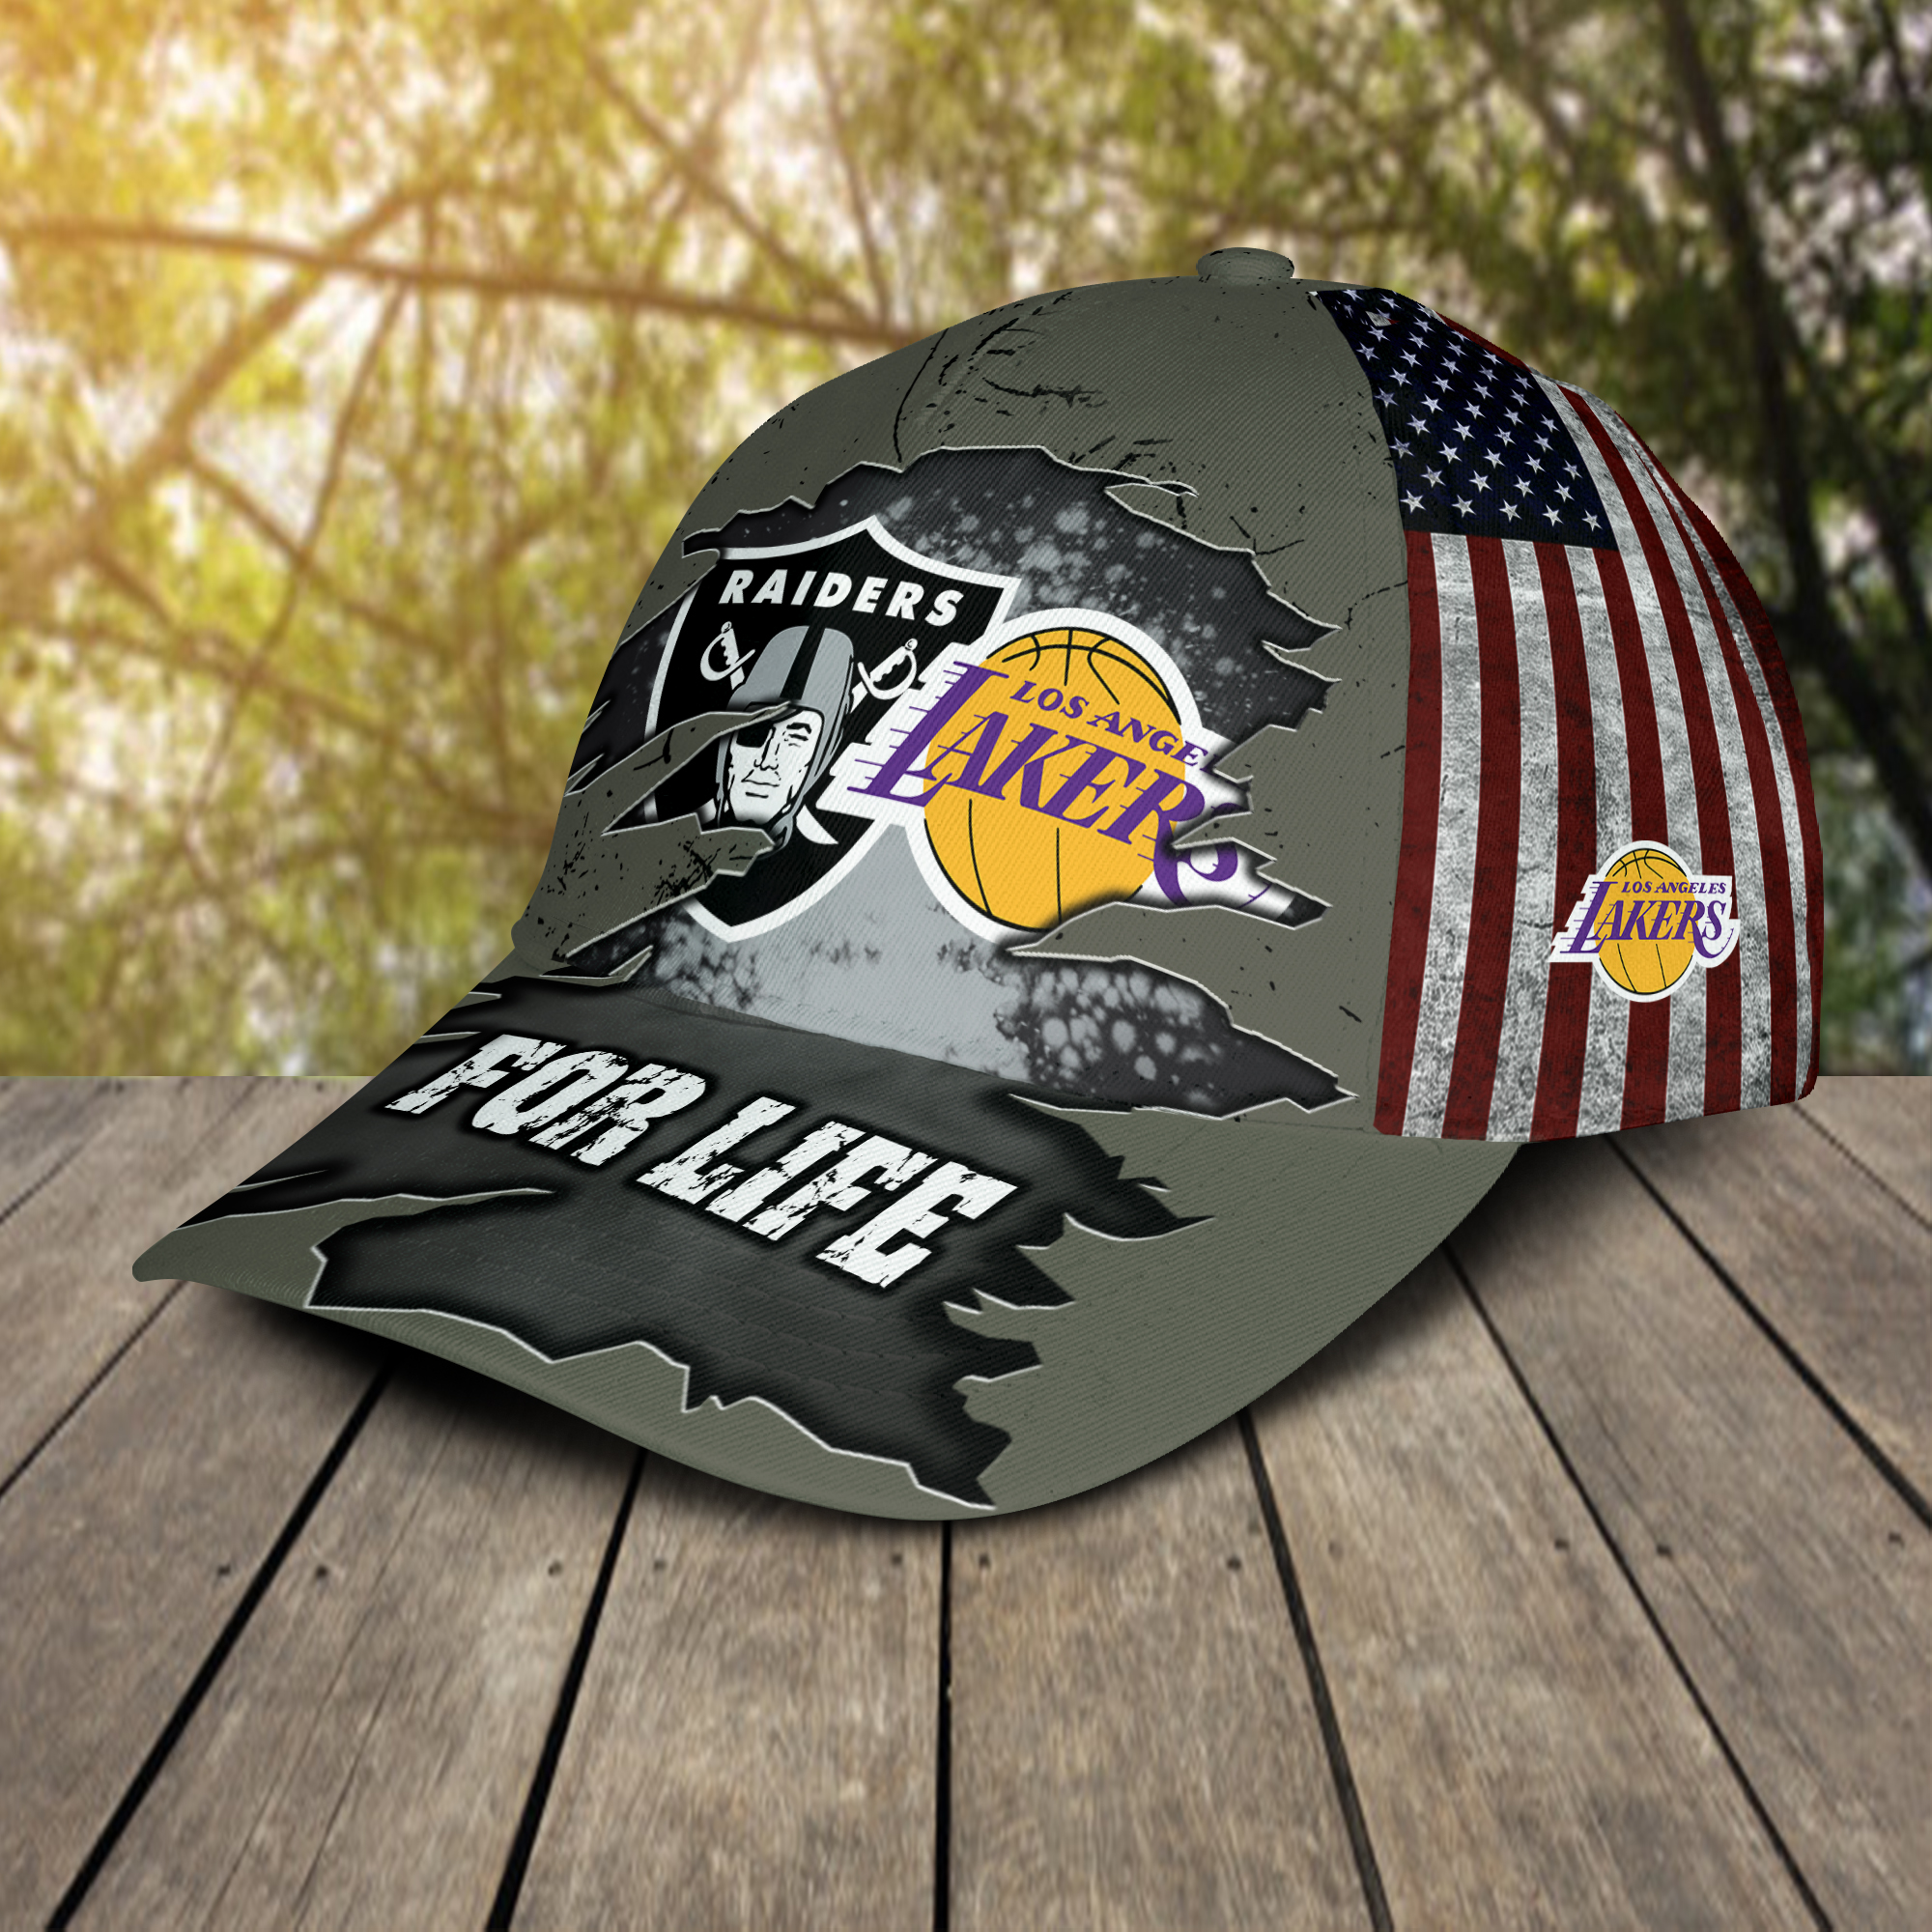 Raiders And Los Angeles Lakers For Life Cap 3